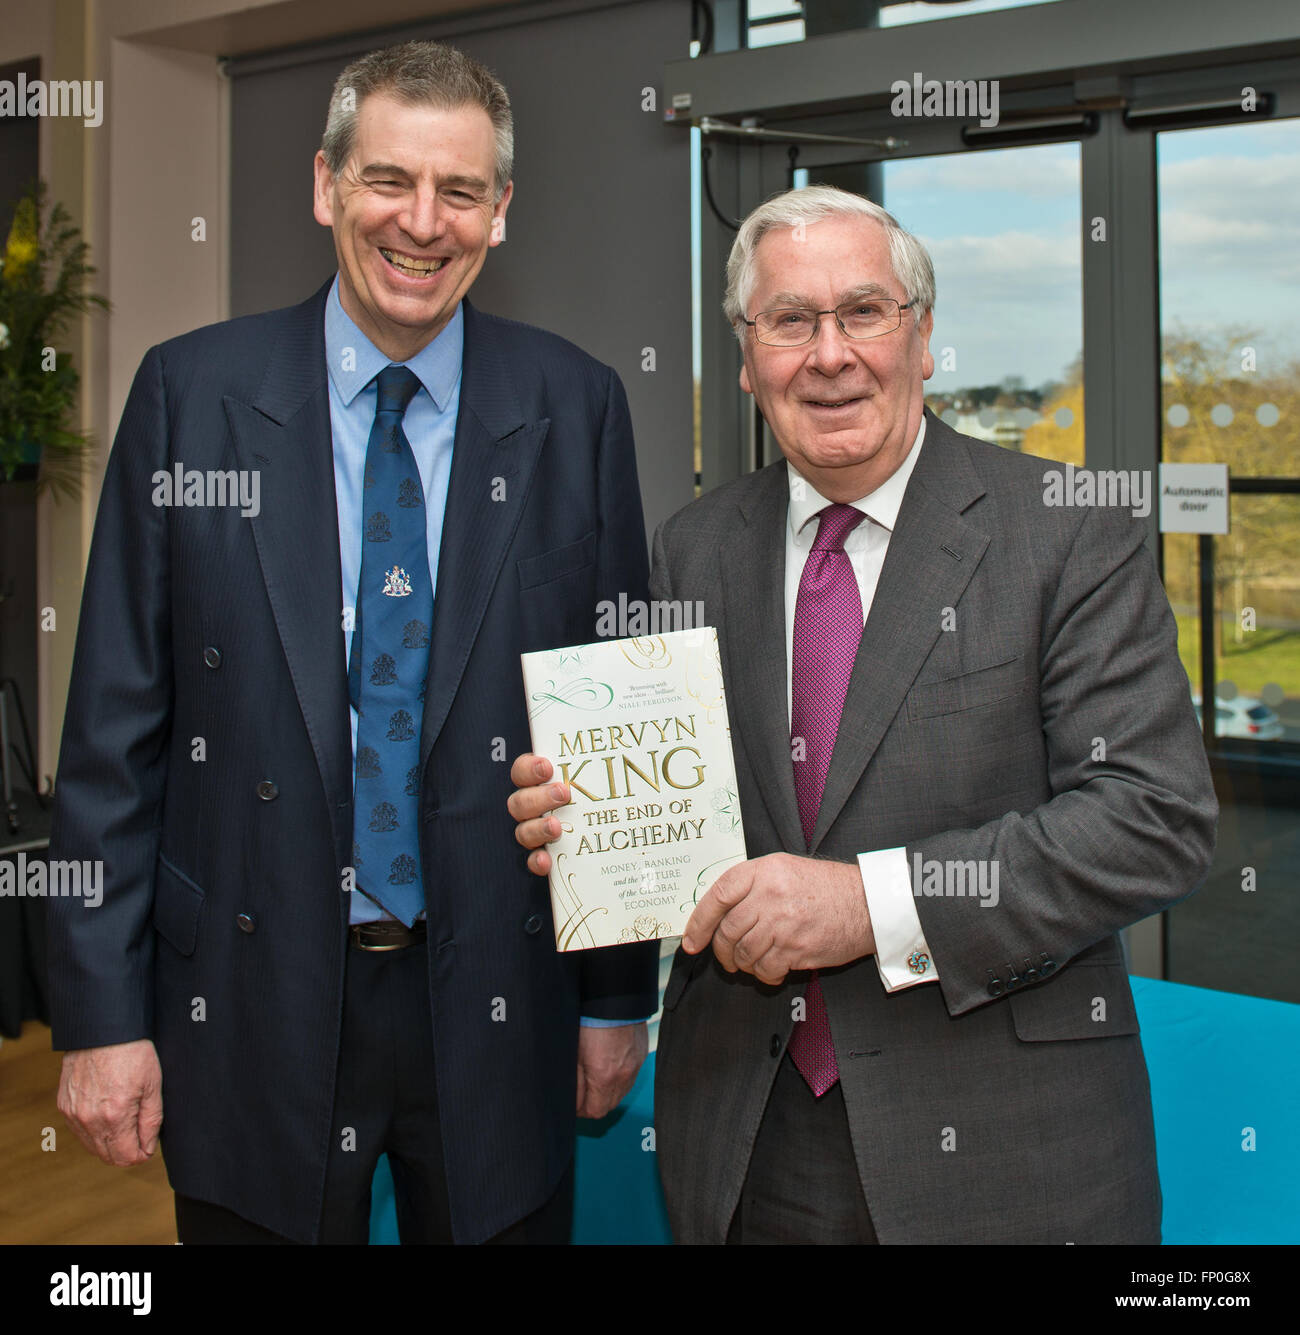 Worcester, UK. 16th March, 2016. University Arena.Lord Mervyn King, former Governor of the Bank of England, will - Stock Image